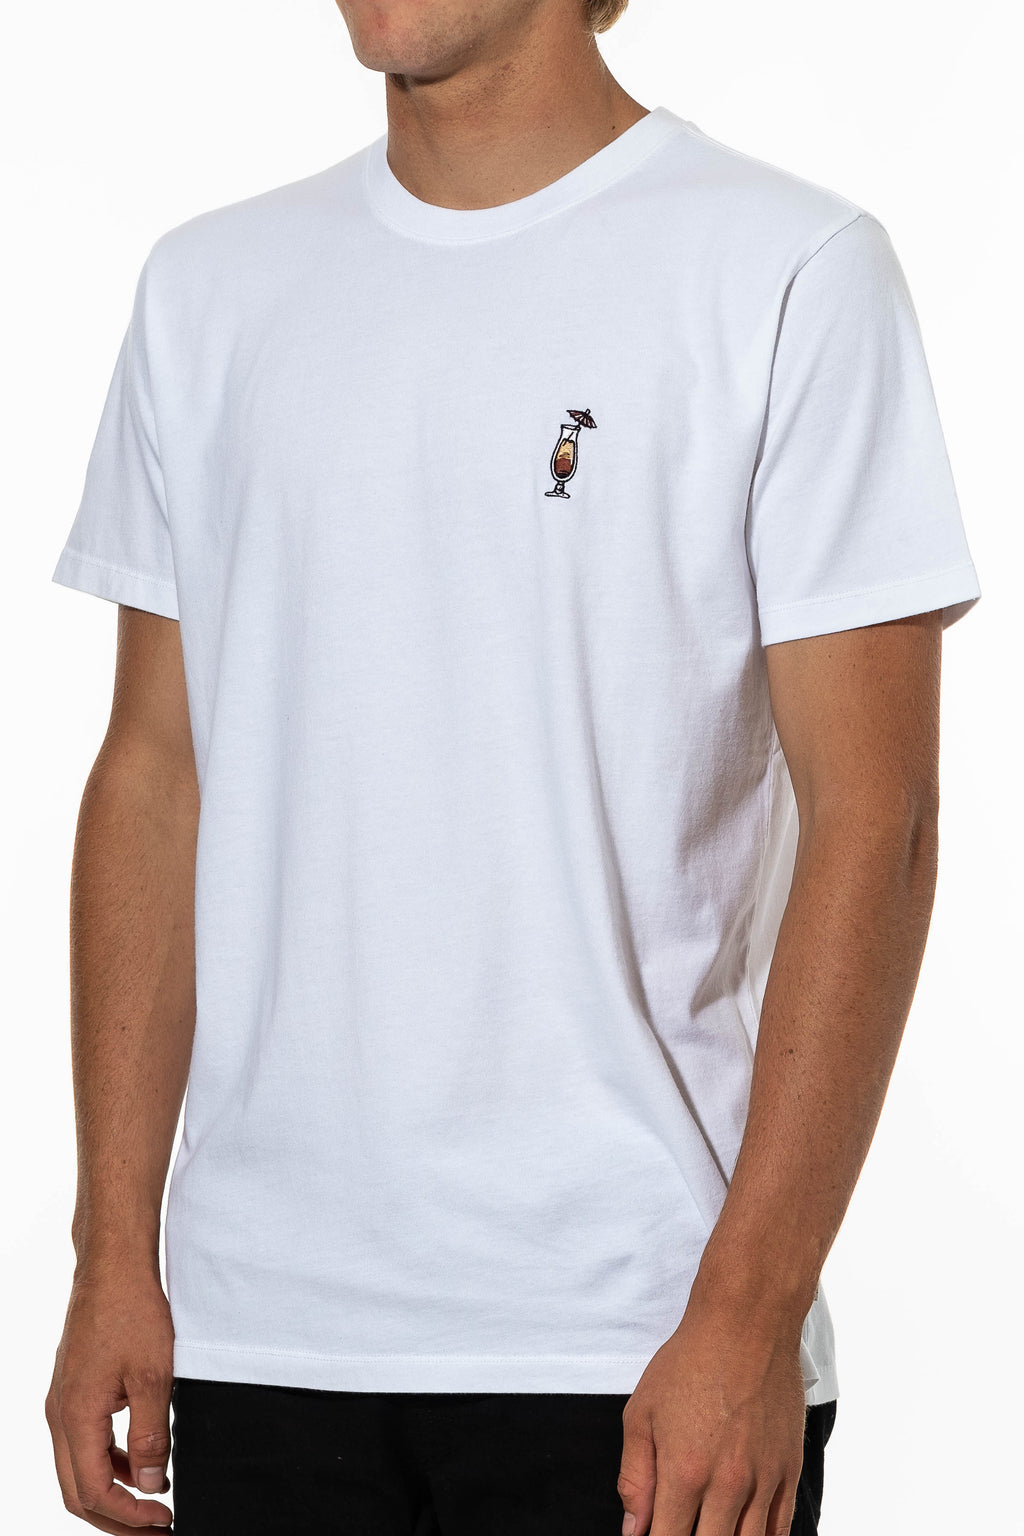 Man Tai Embroidery Tee (White)